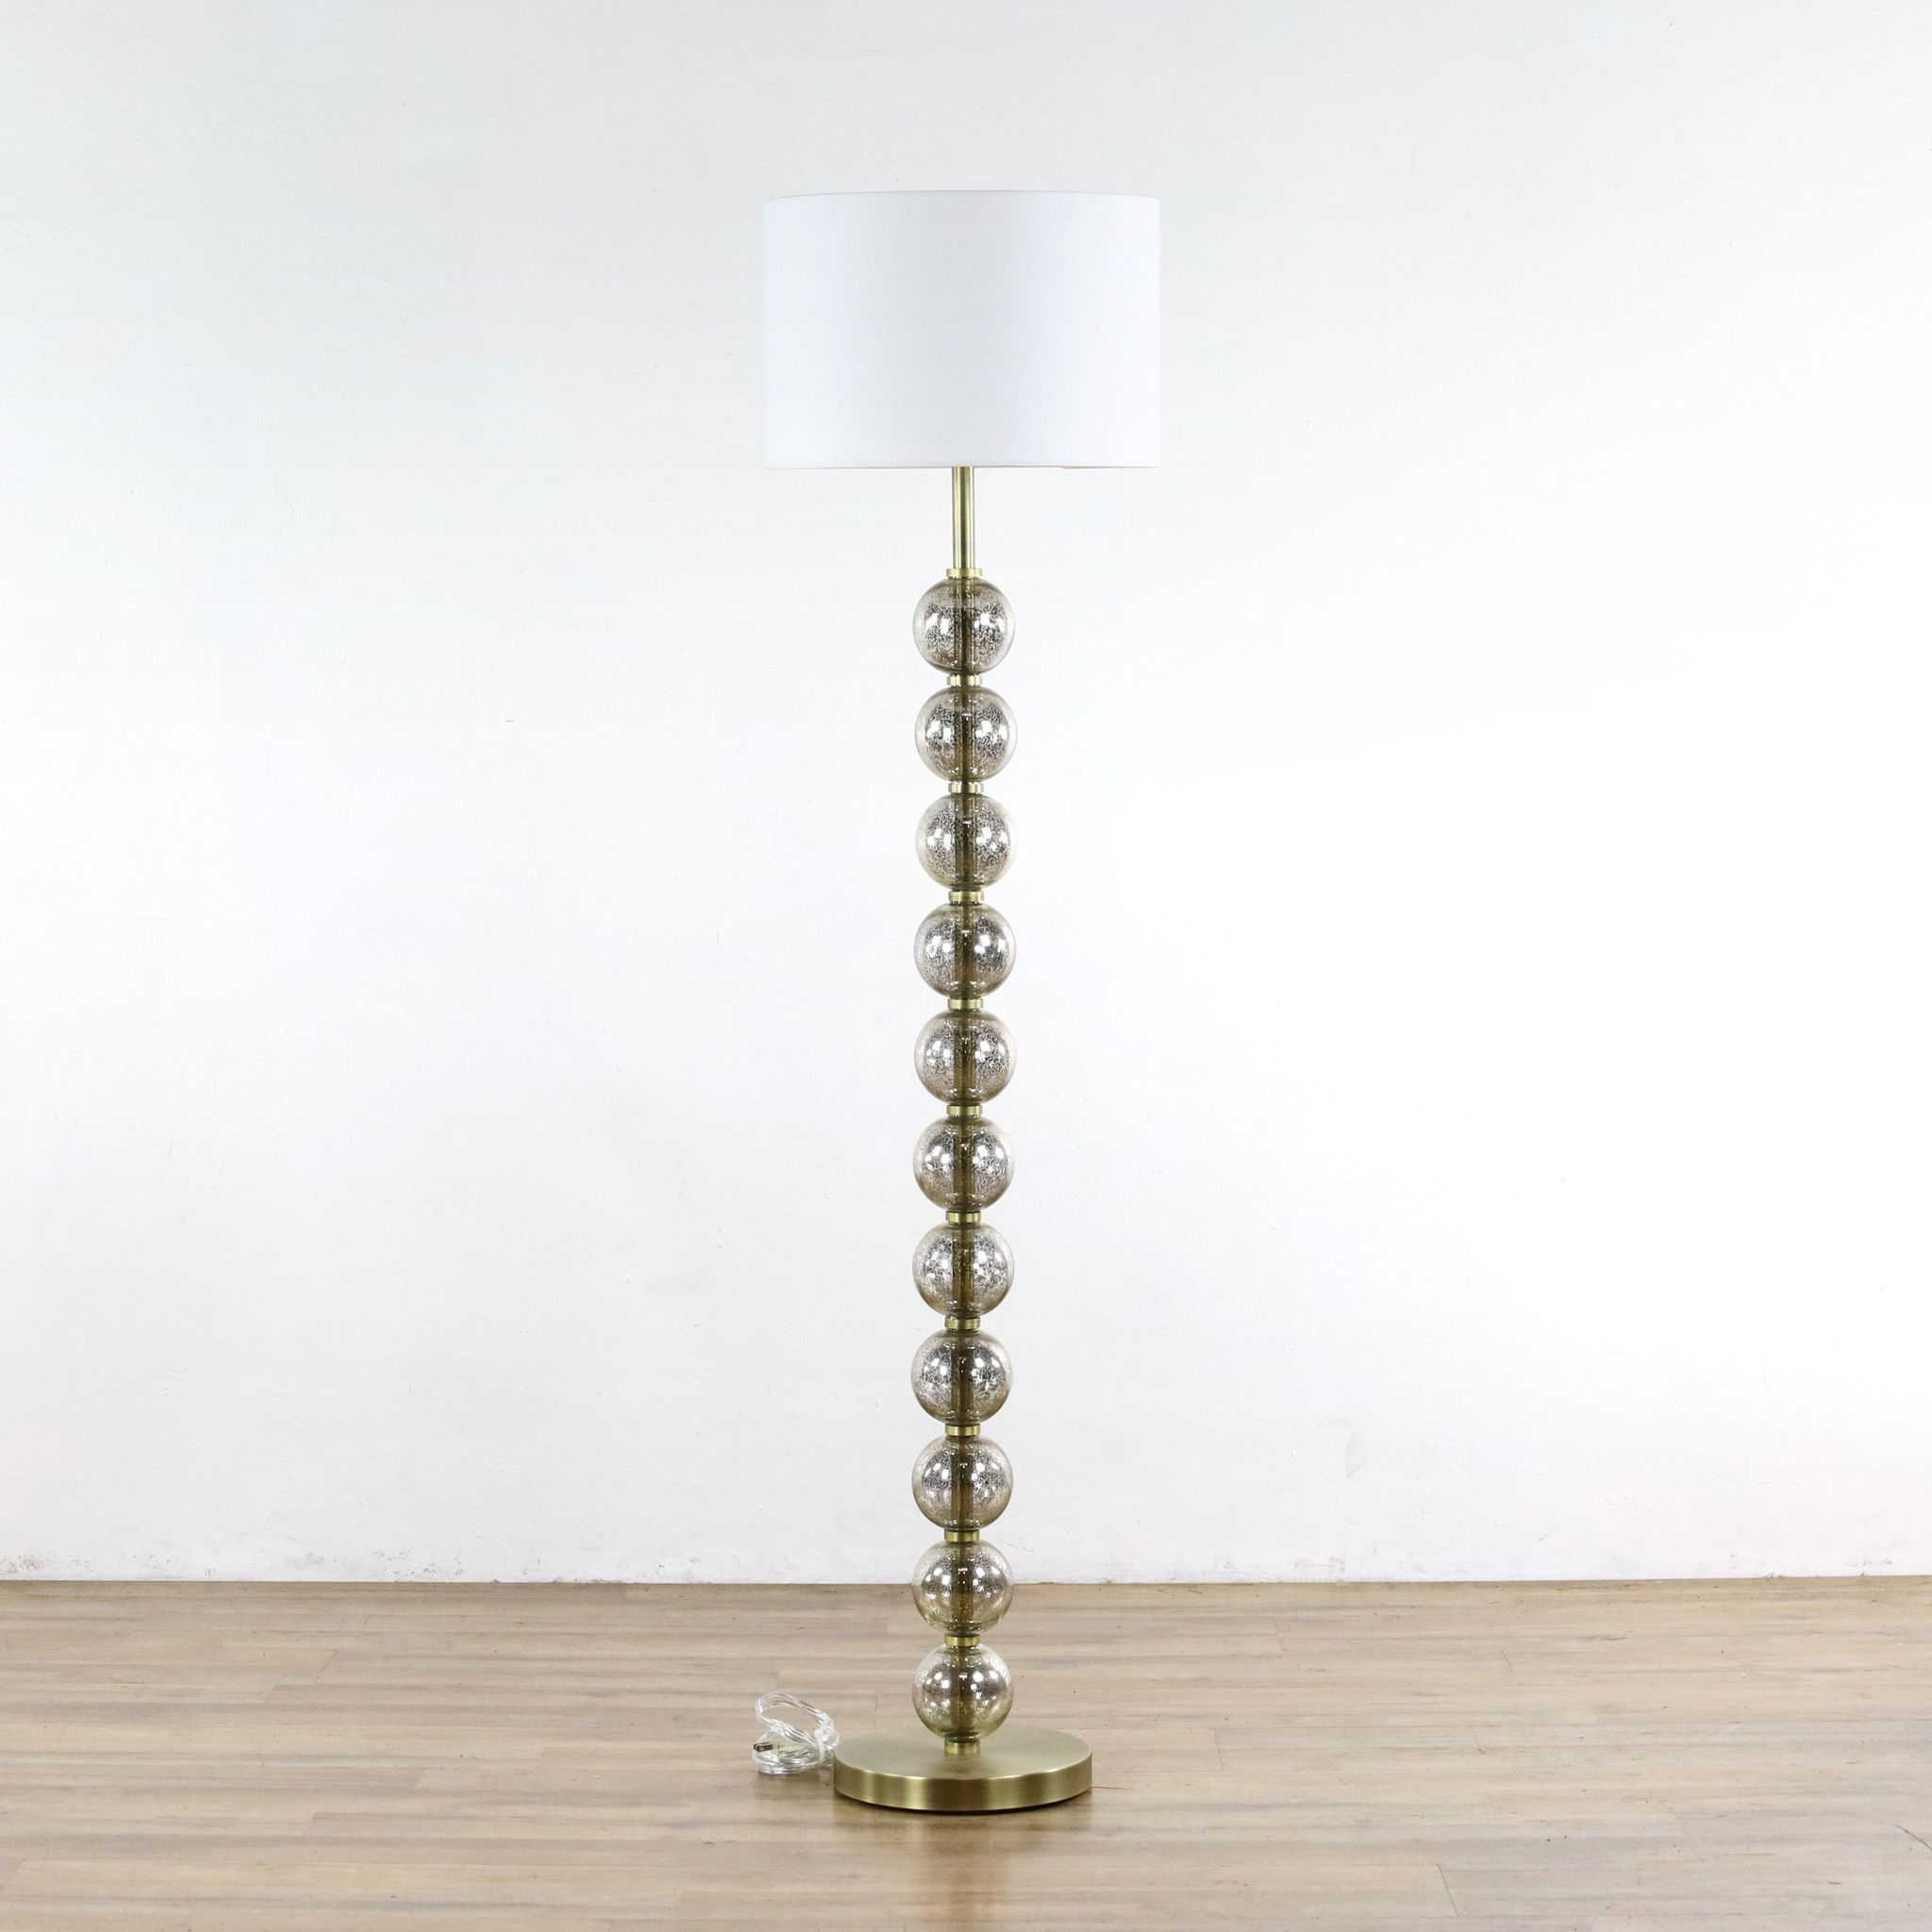 Mercury Glass Floor Lamp Div P Inspired By Old Hollywood Glamour This Stacked Ball Floor Lamp Brings Drama And L Glass Floor Lamp Things To Sell Floor Lamp